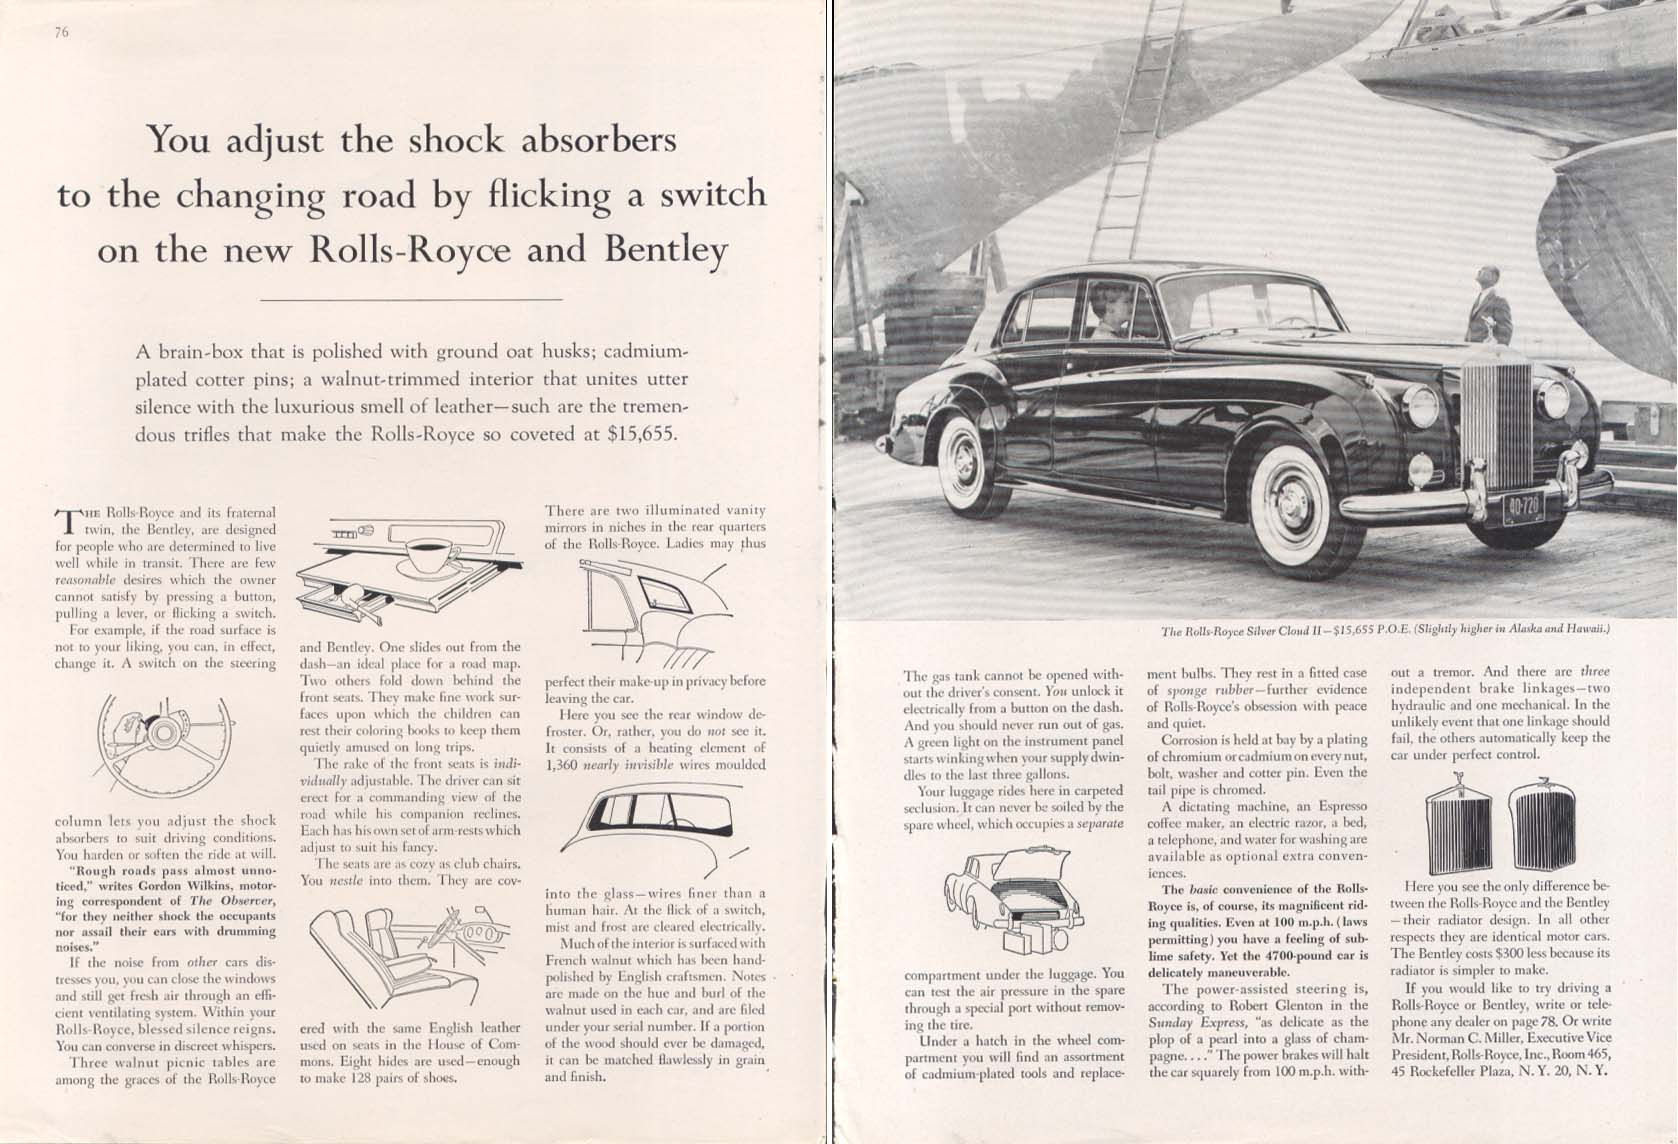 Image for Adjust shock absorbers by flicking Rolls-Royce ad 1962